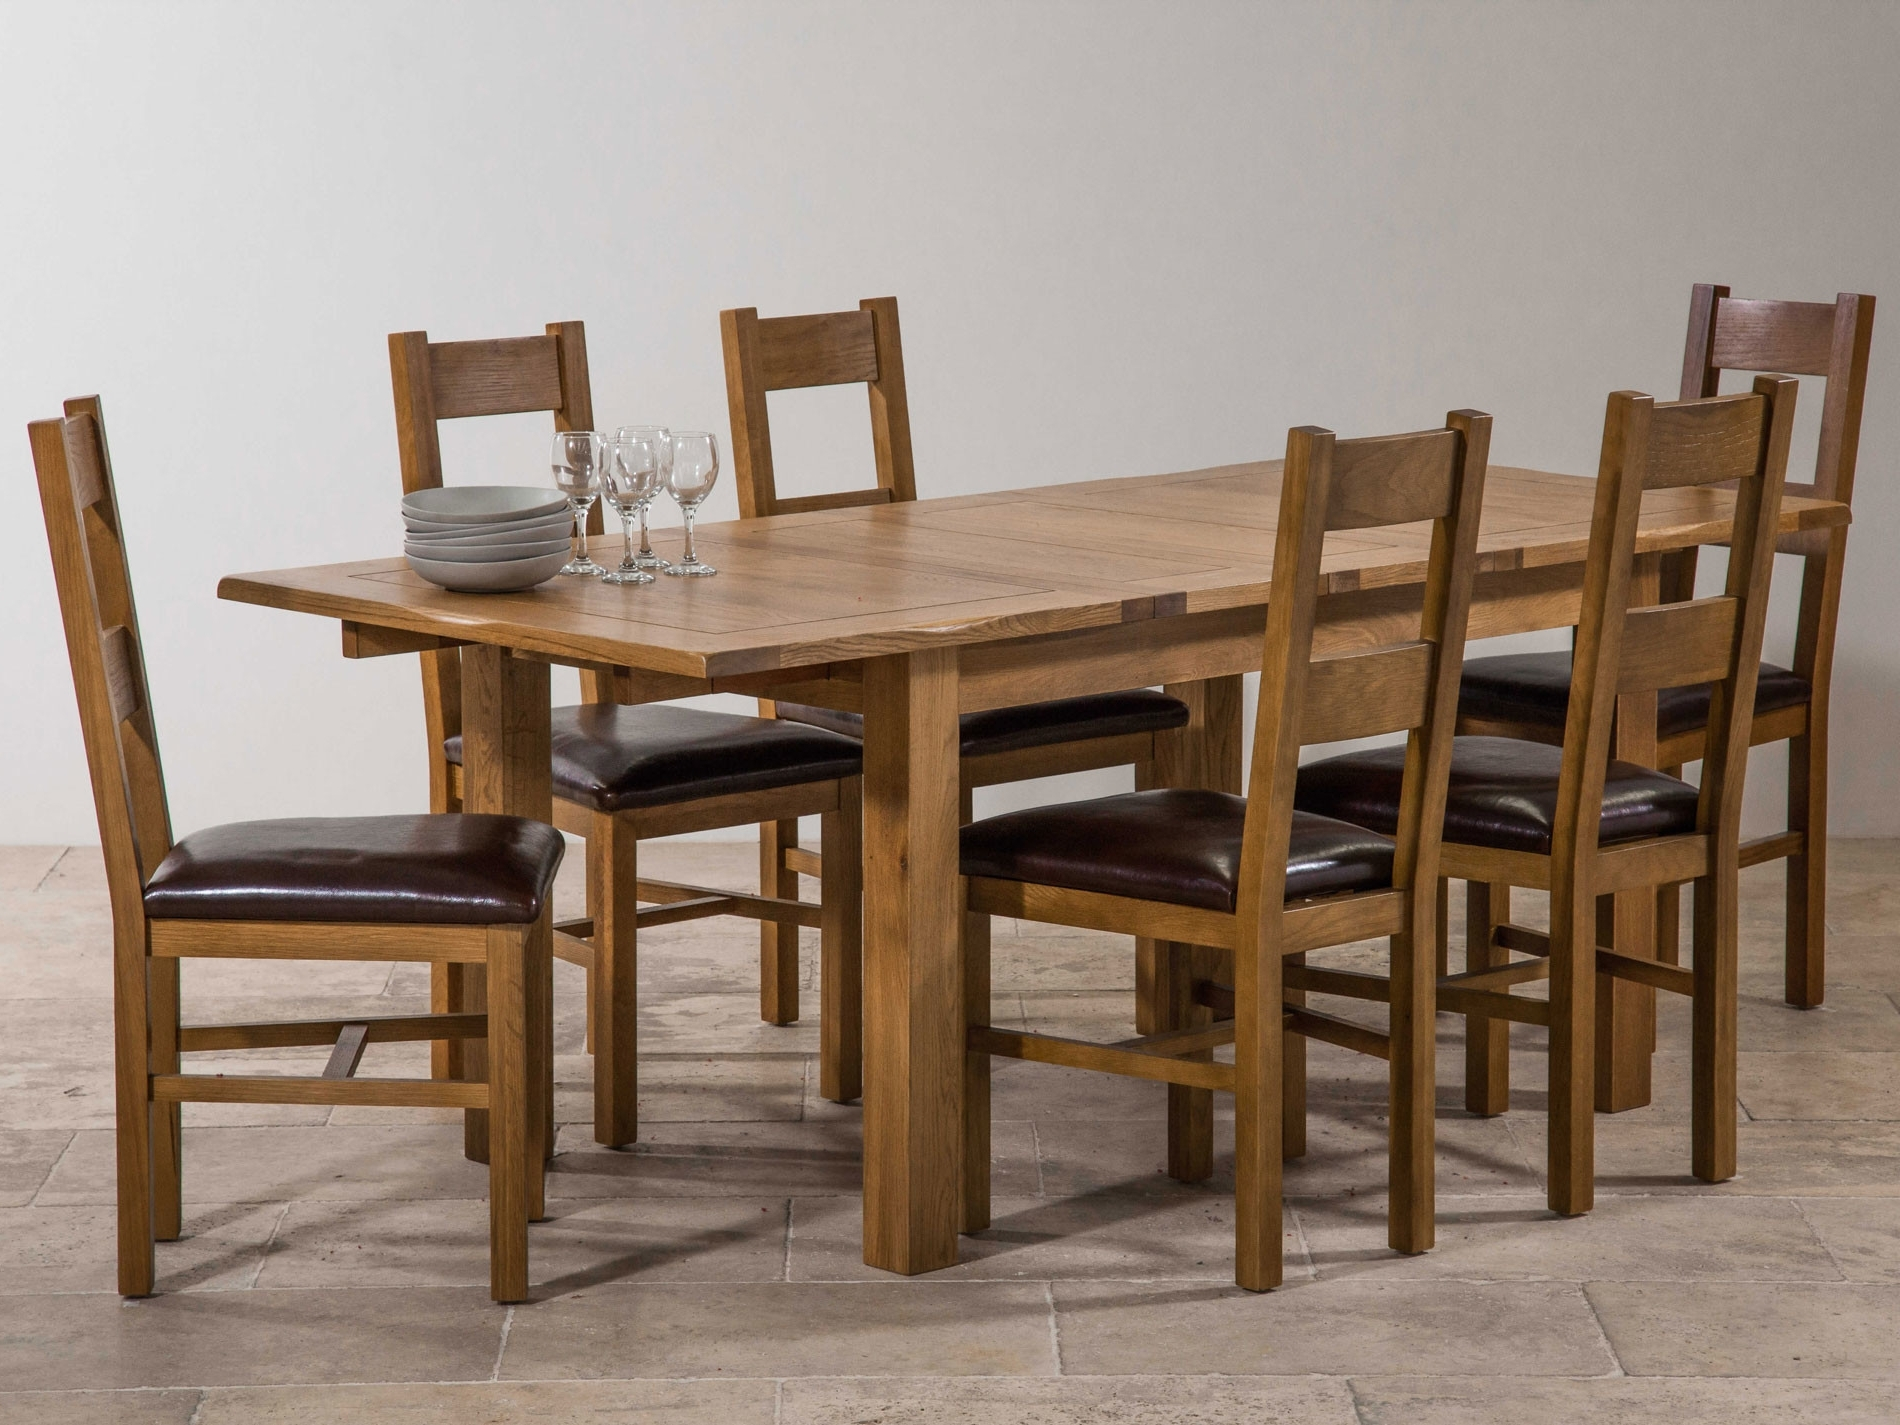 Extending Dining Tables Set Regarding Trendy Extending Dining Room Table And Chairs Lovely Rustic Solid Oak (View 7 of 25)